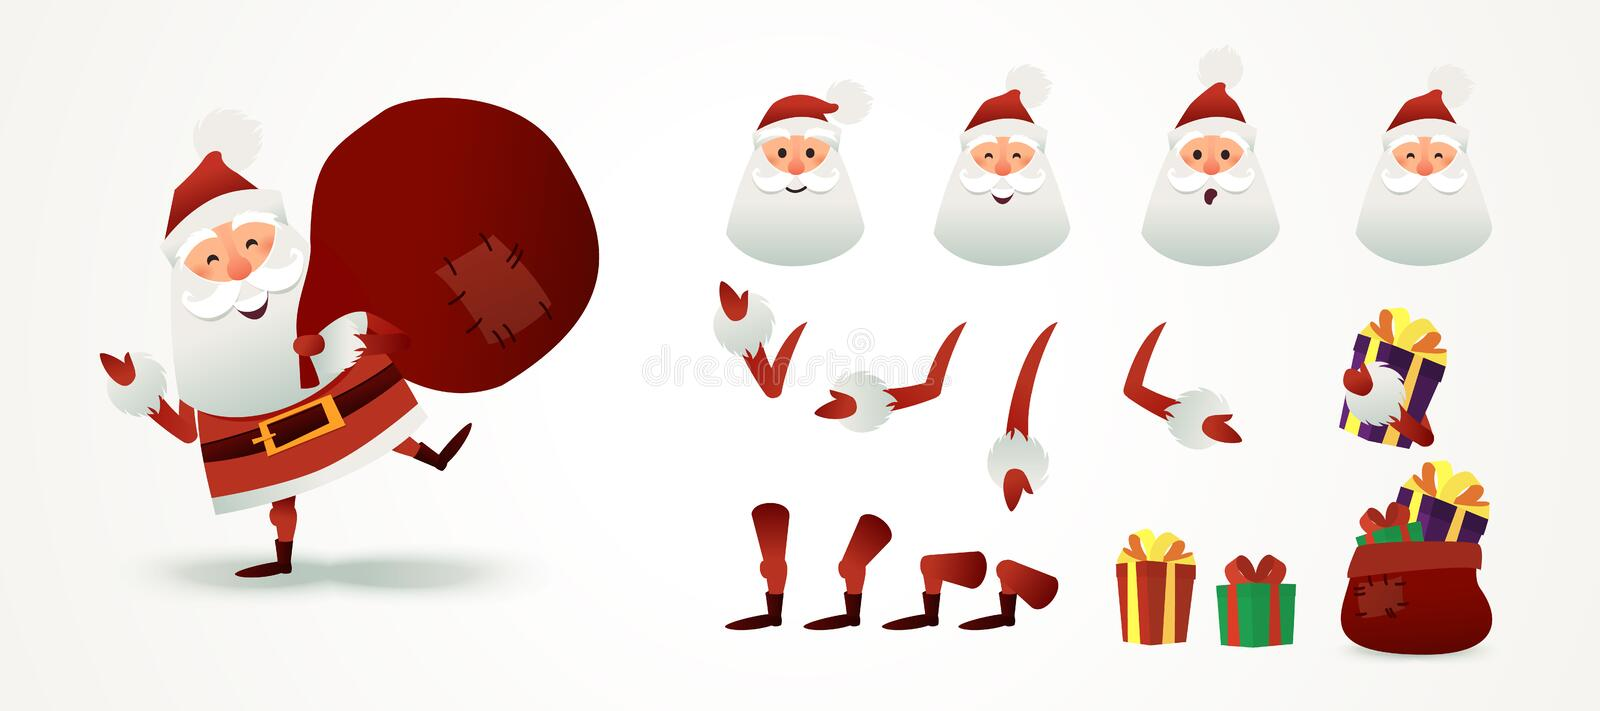 Santa Claus set for animation and motion design. Christmas father emotion, part body, present boxes, hats. Cute X-mas vector illustration